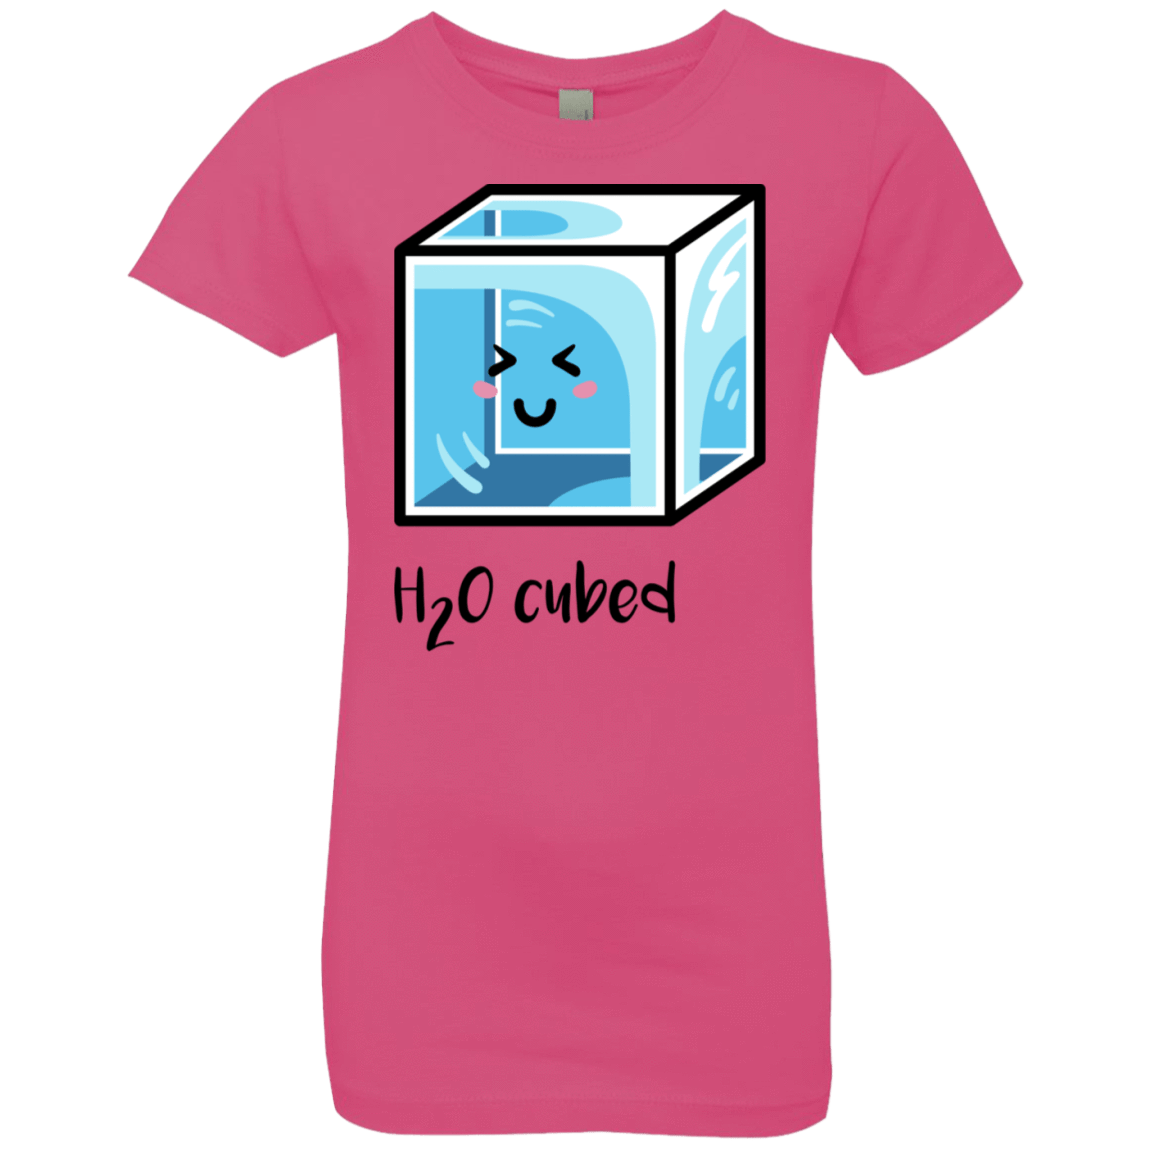 H2O Cubed Girls Premium T-Shirt